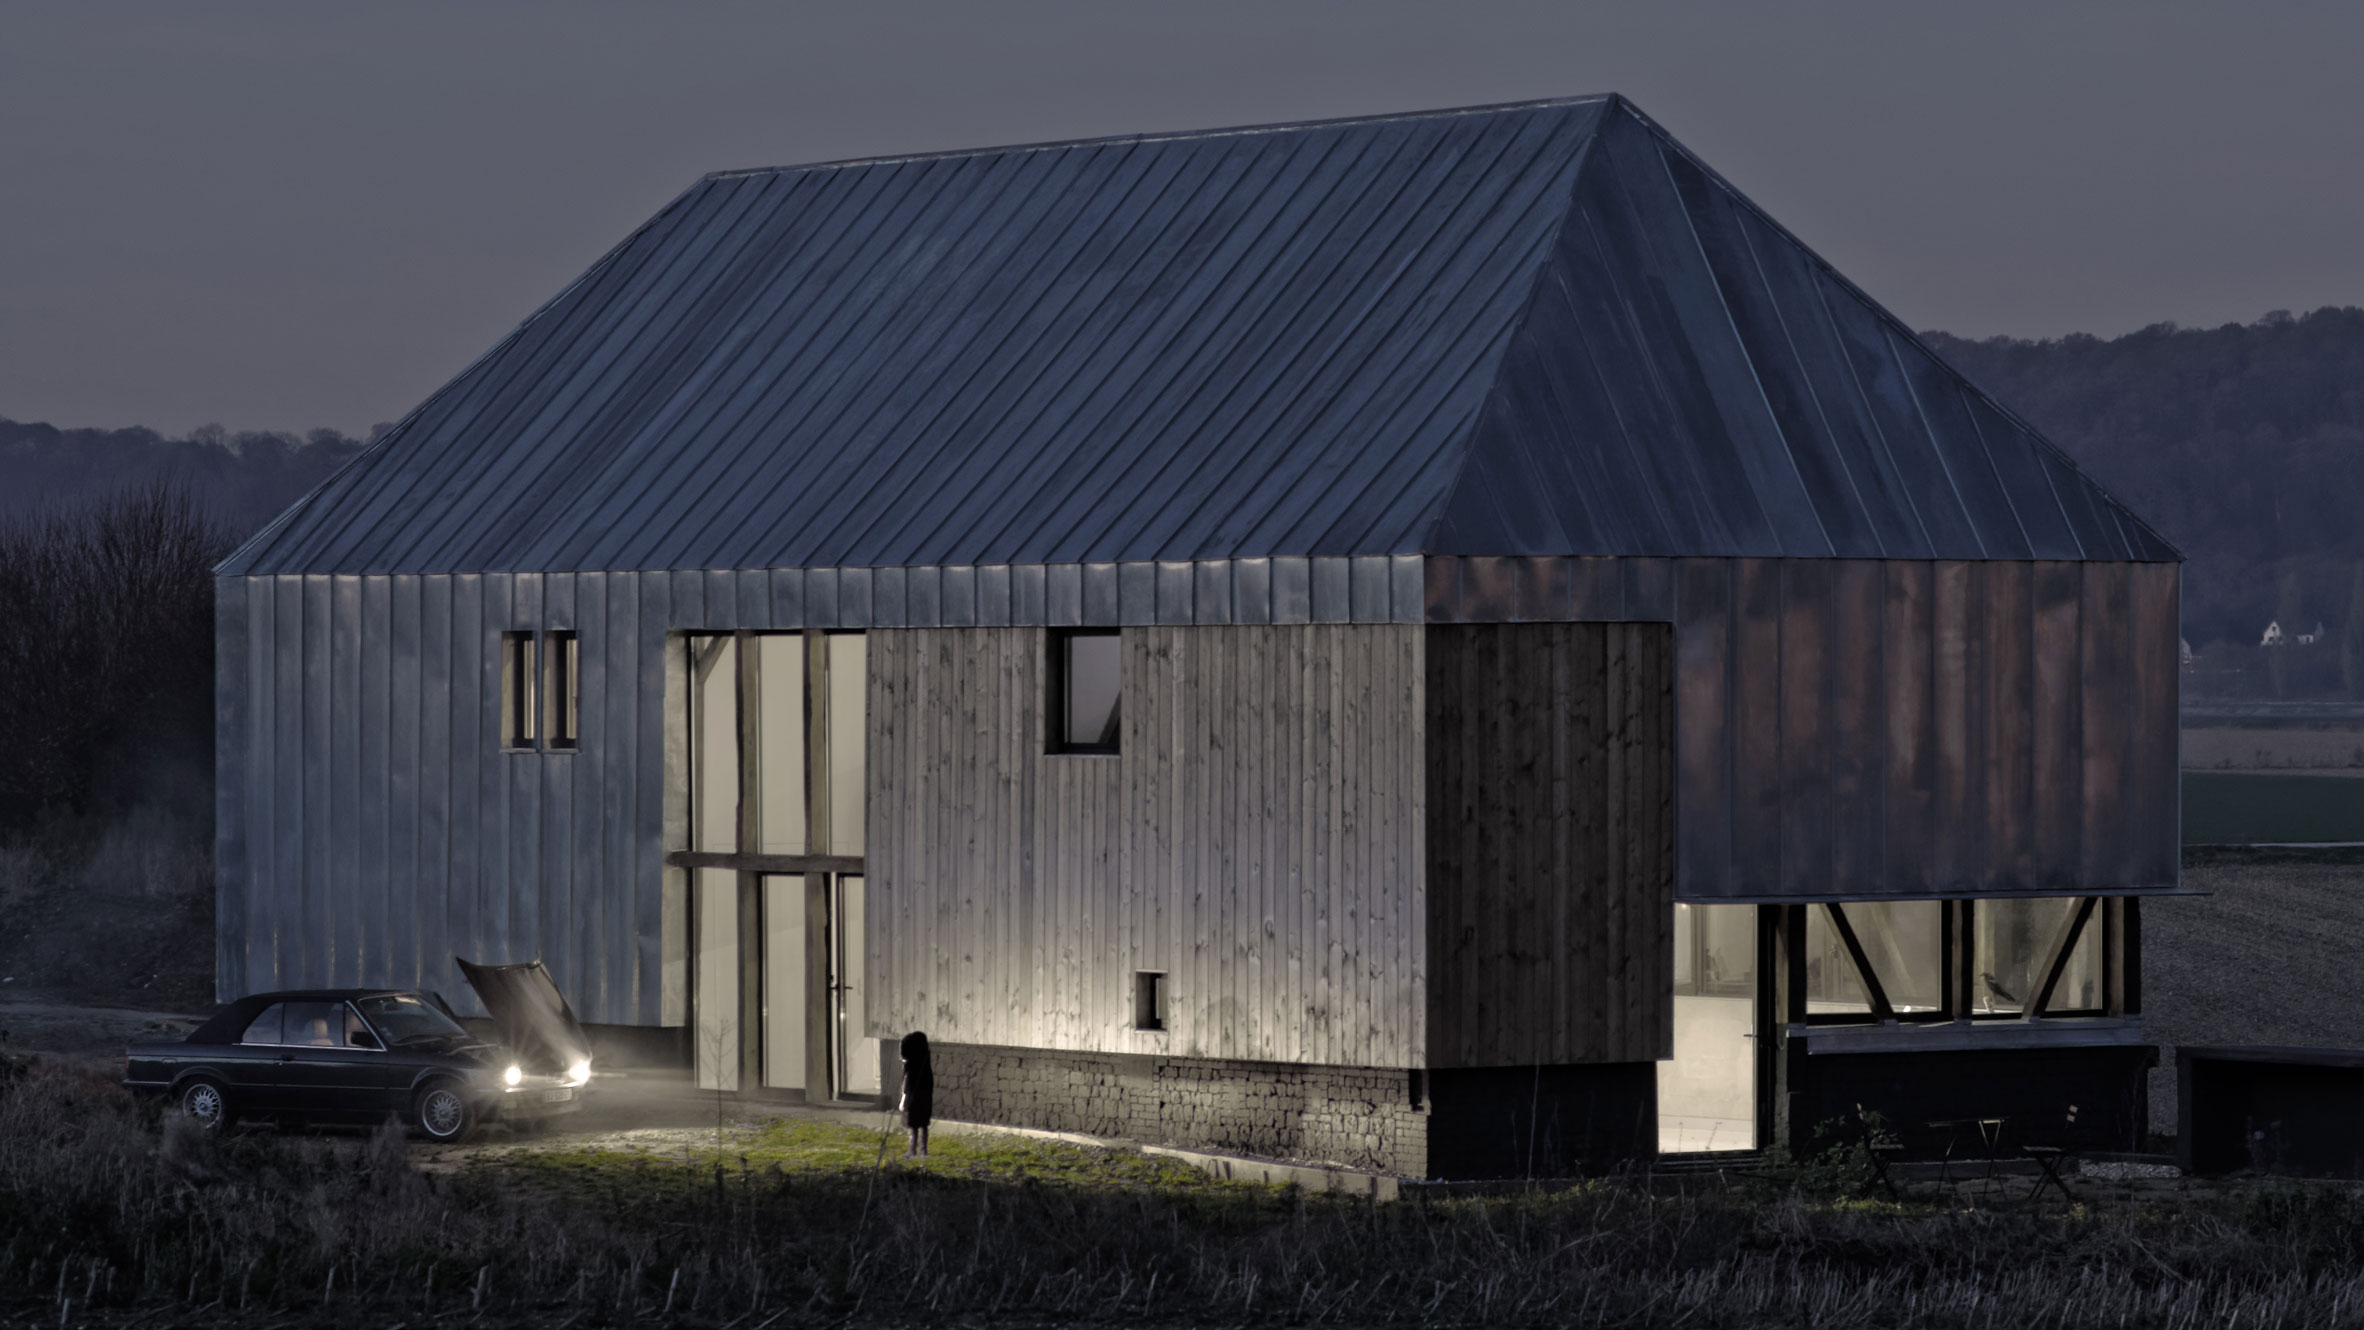 Antonin Ziegler Covers Abandoned Barn In Zinc Plates To Create Rustic Home Northern France